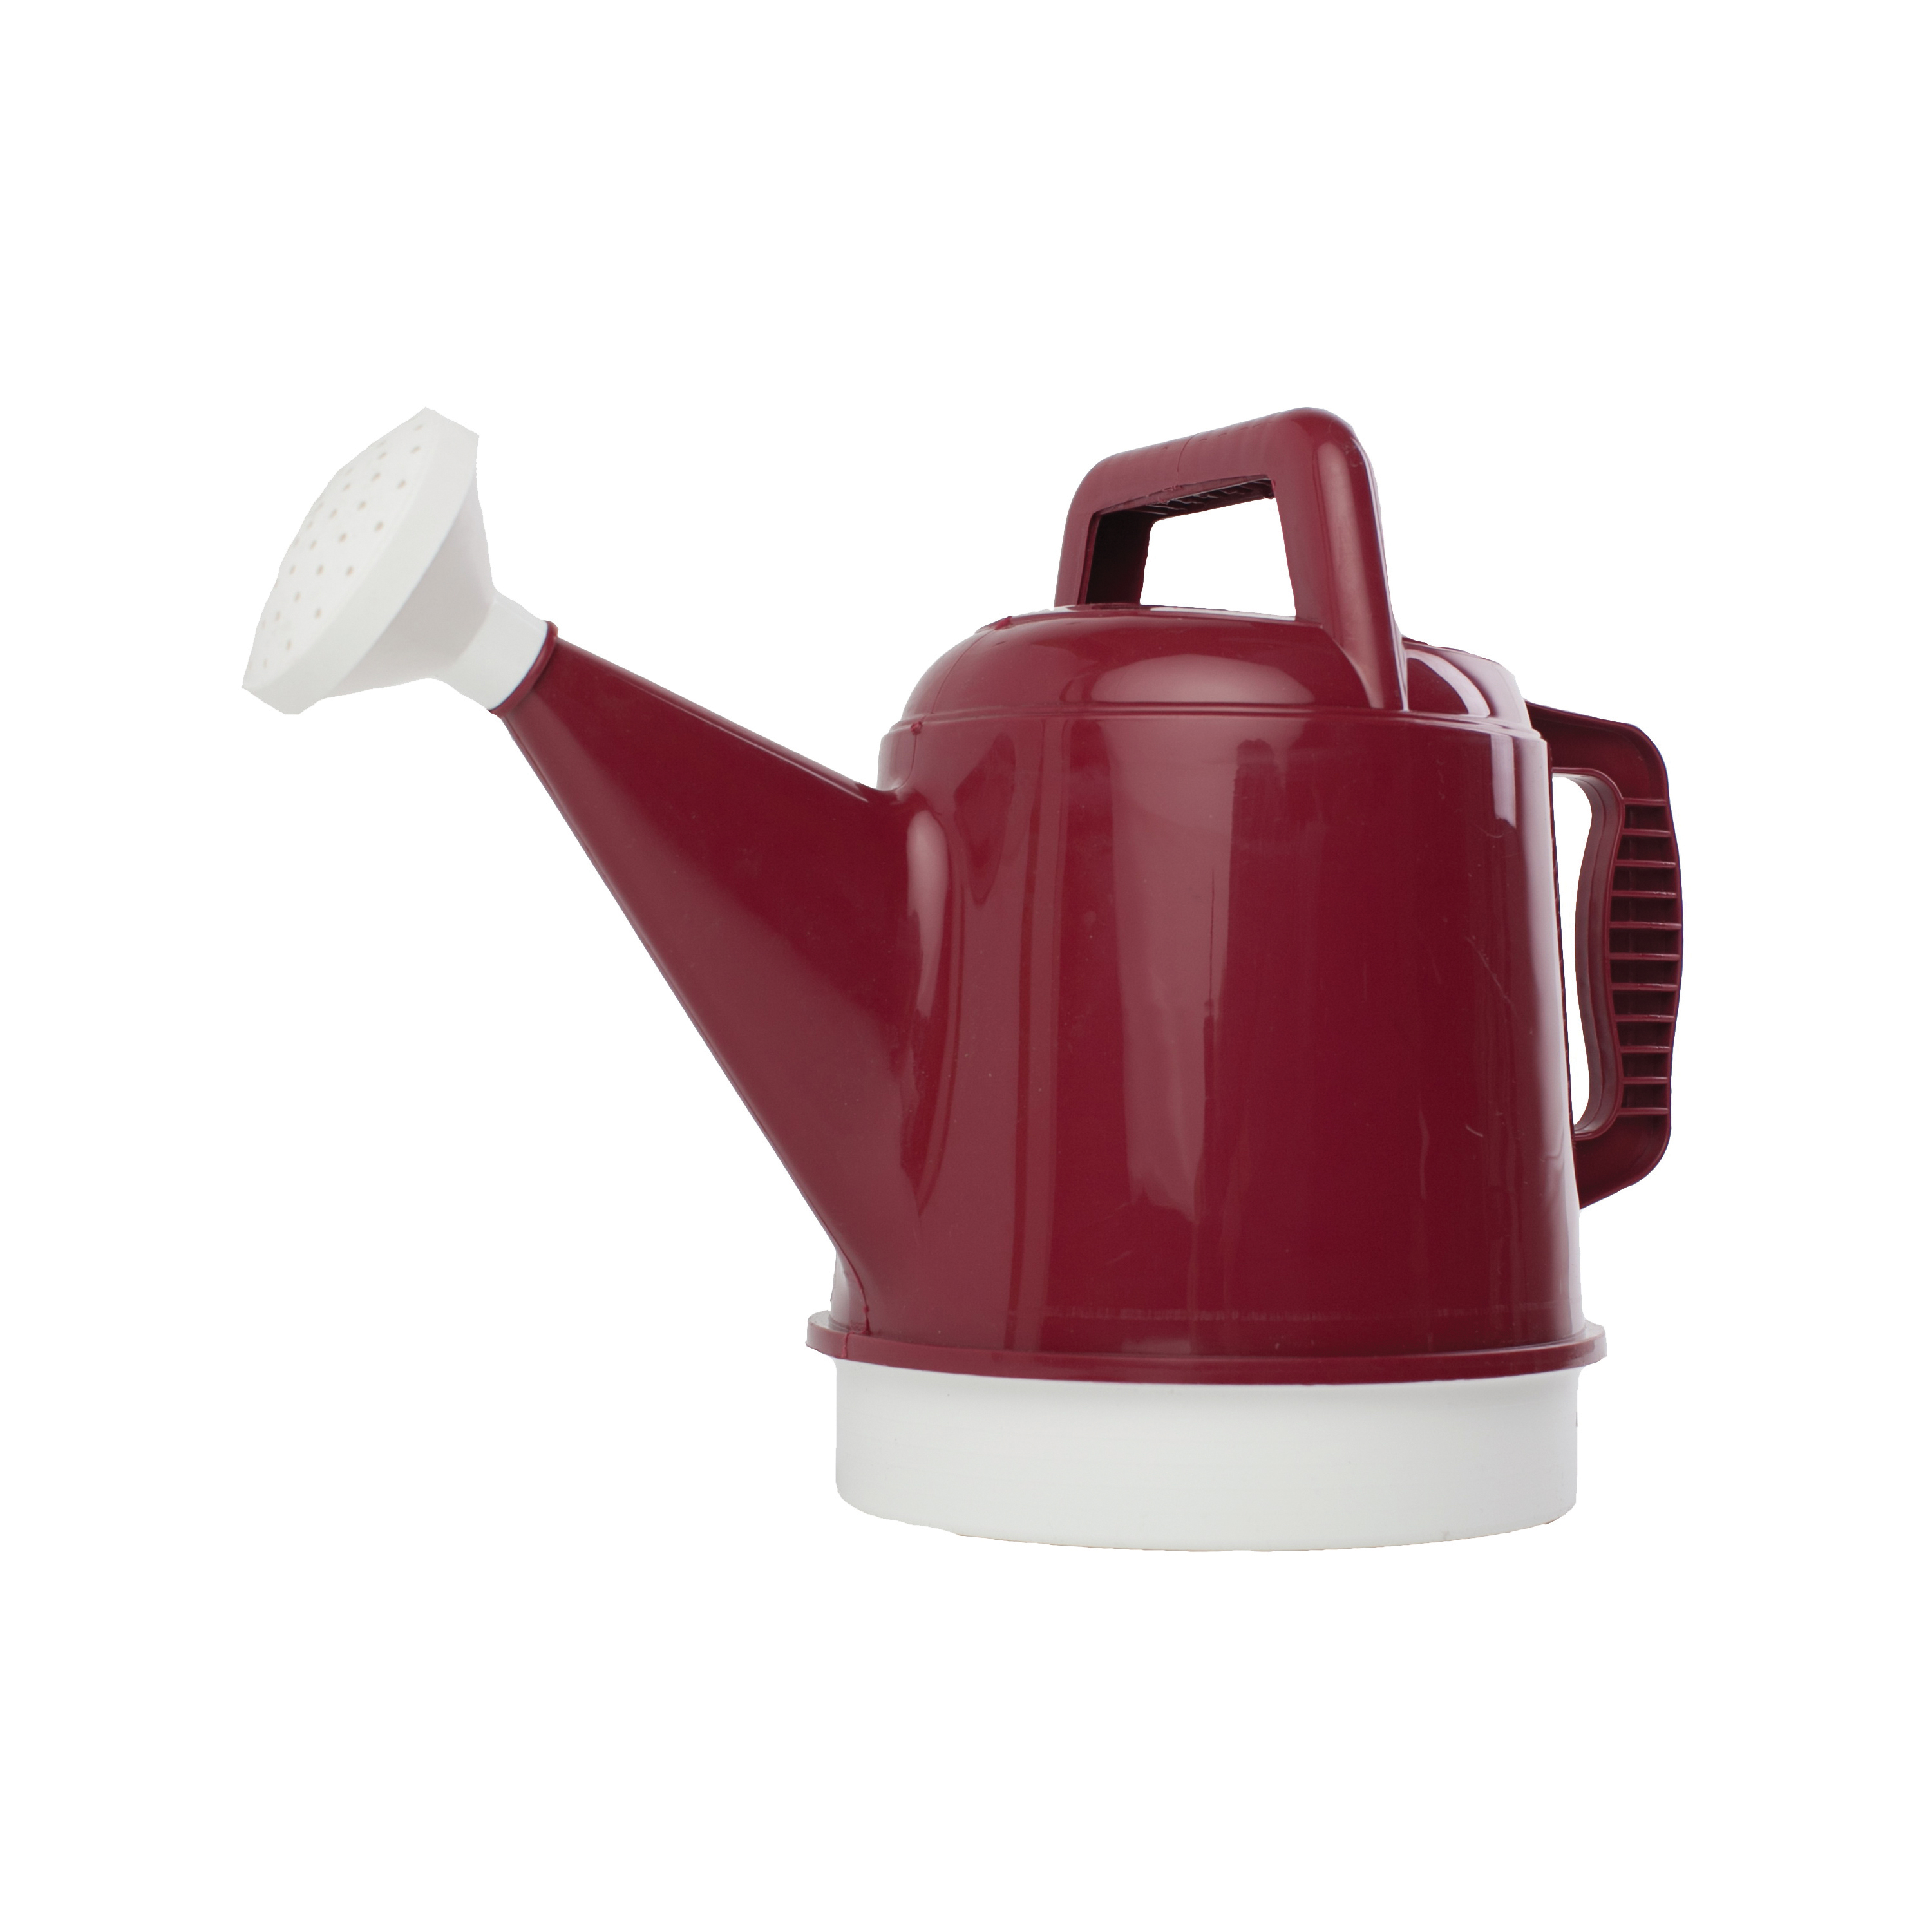 Picture of Bloem DWC2-12 Watering Can, 2.5 gal Can, Polypropylene, Union Red